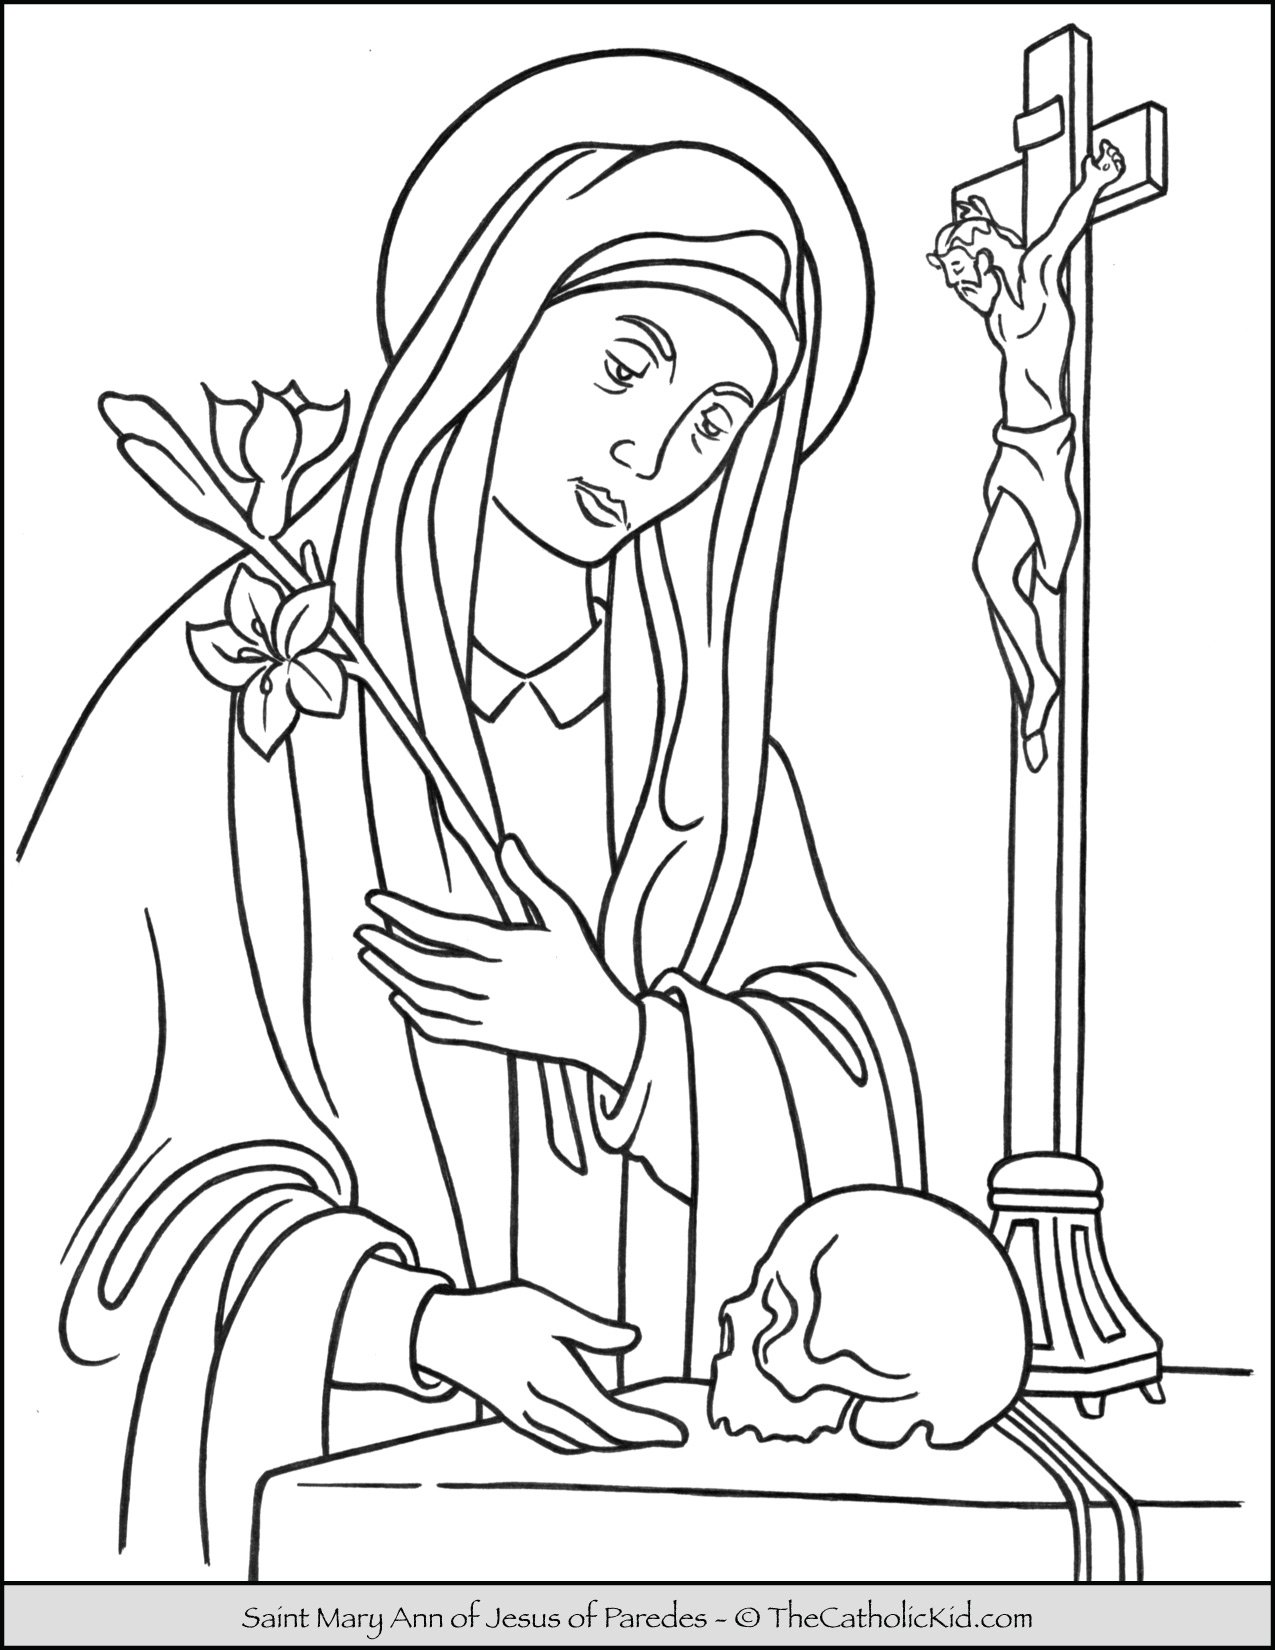 Saint Mary Ann of Jesus of Paredes Coloring Page